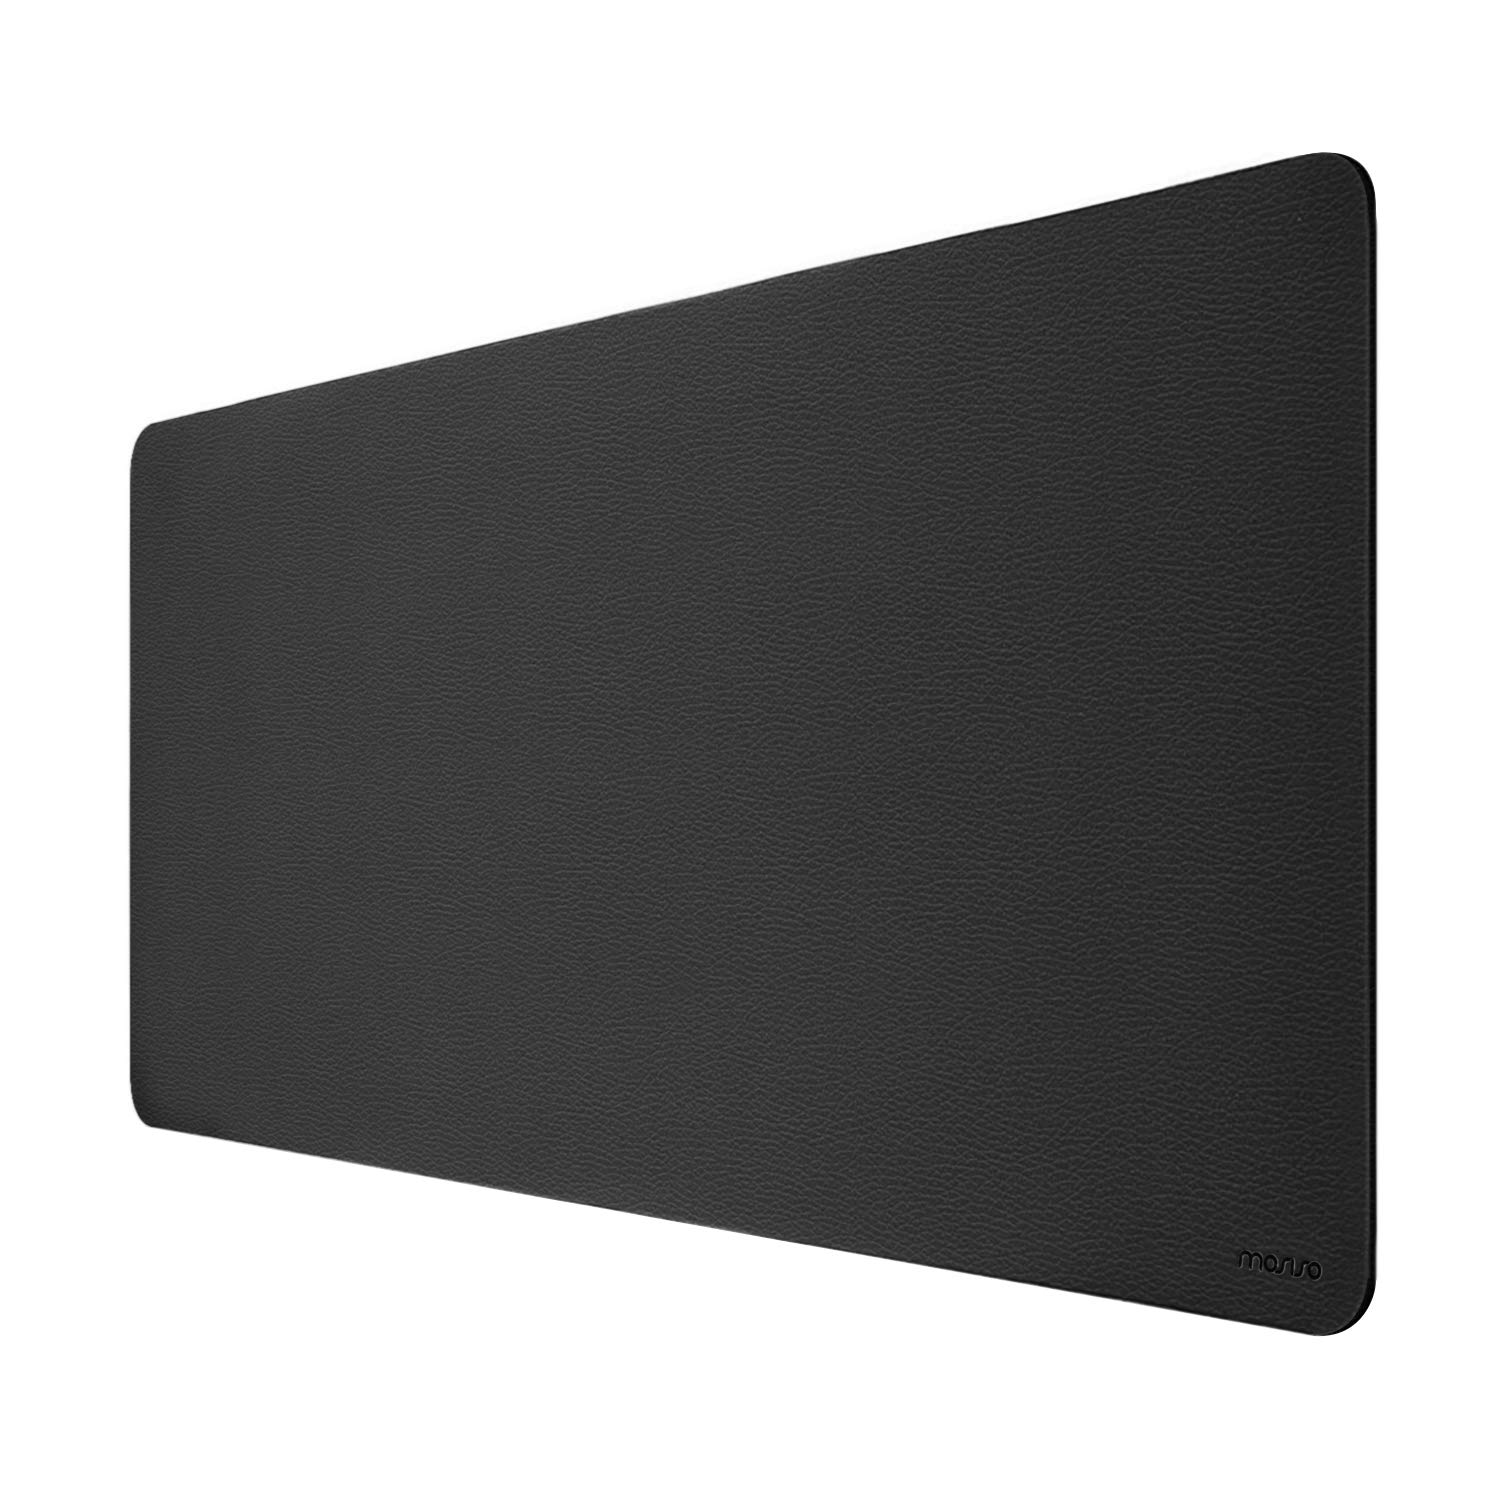 Mousepad MOSISO Office Desk Pad, Multifunctional Water